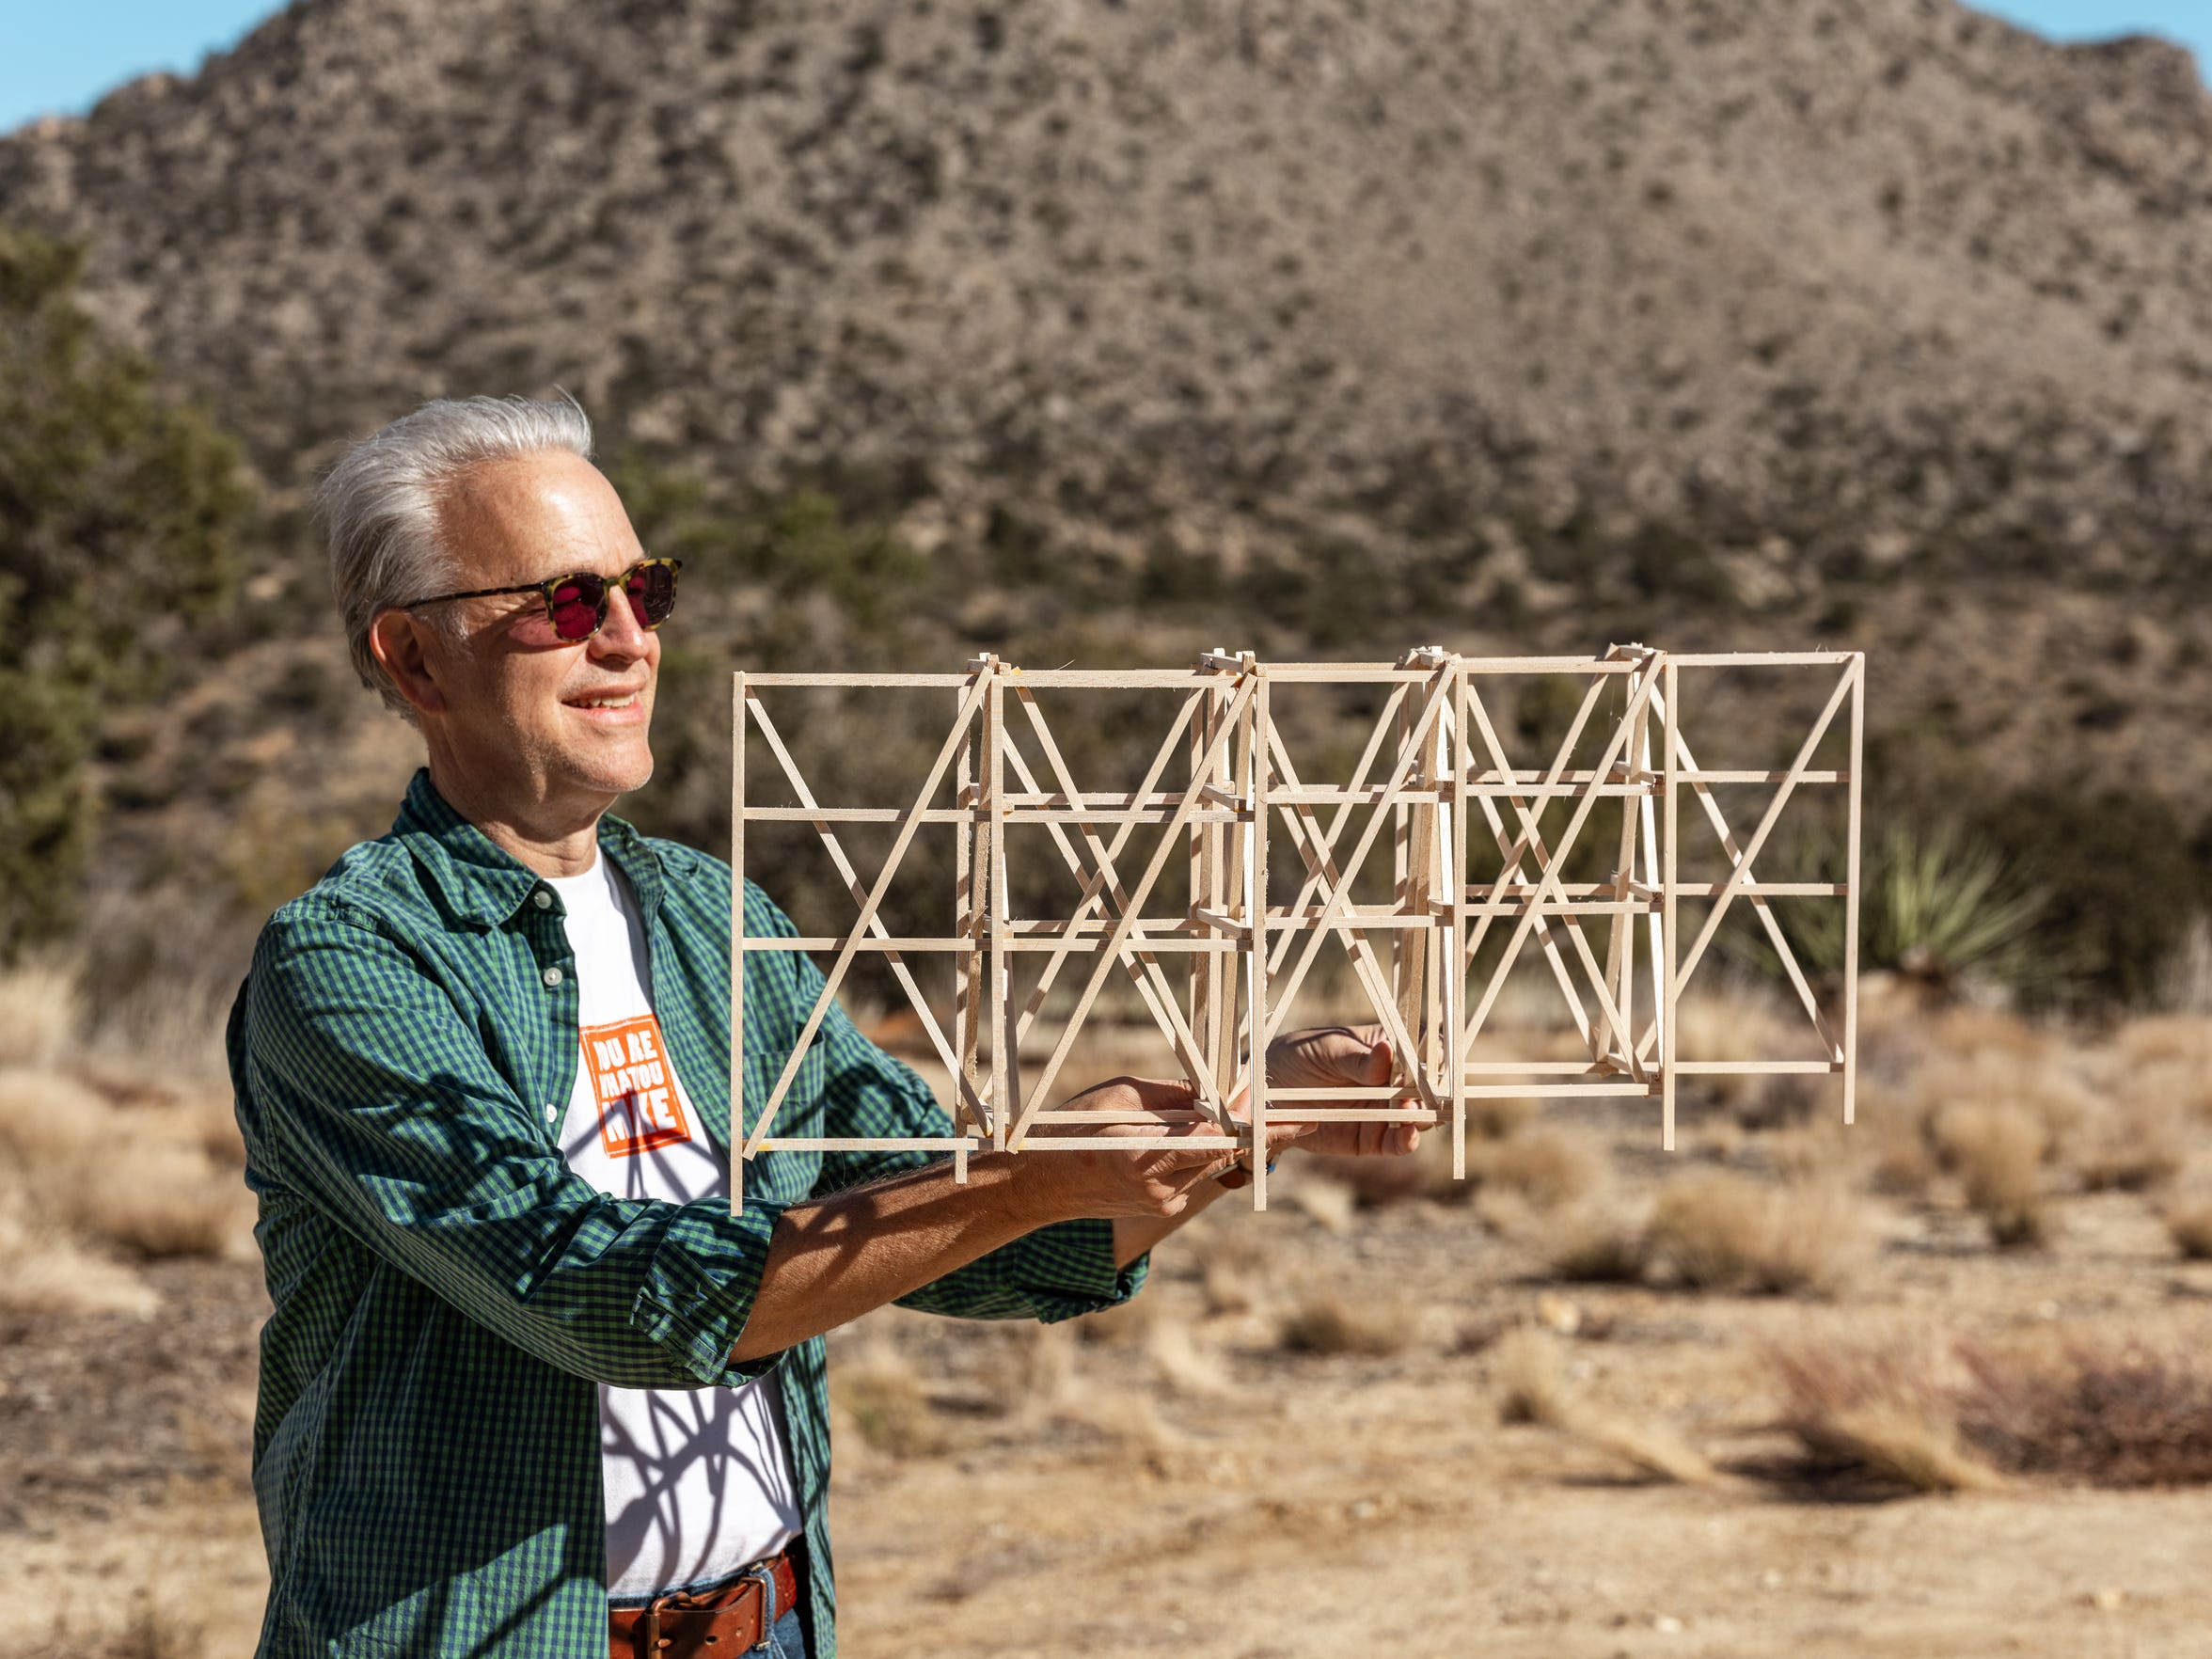 Makerville Studio founder Richard Hovel holds a small-scale version of the wooden structure that will serve as the foundation for Looming Shelter, a parallel project during Desert X 2019.